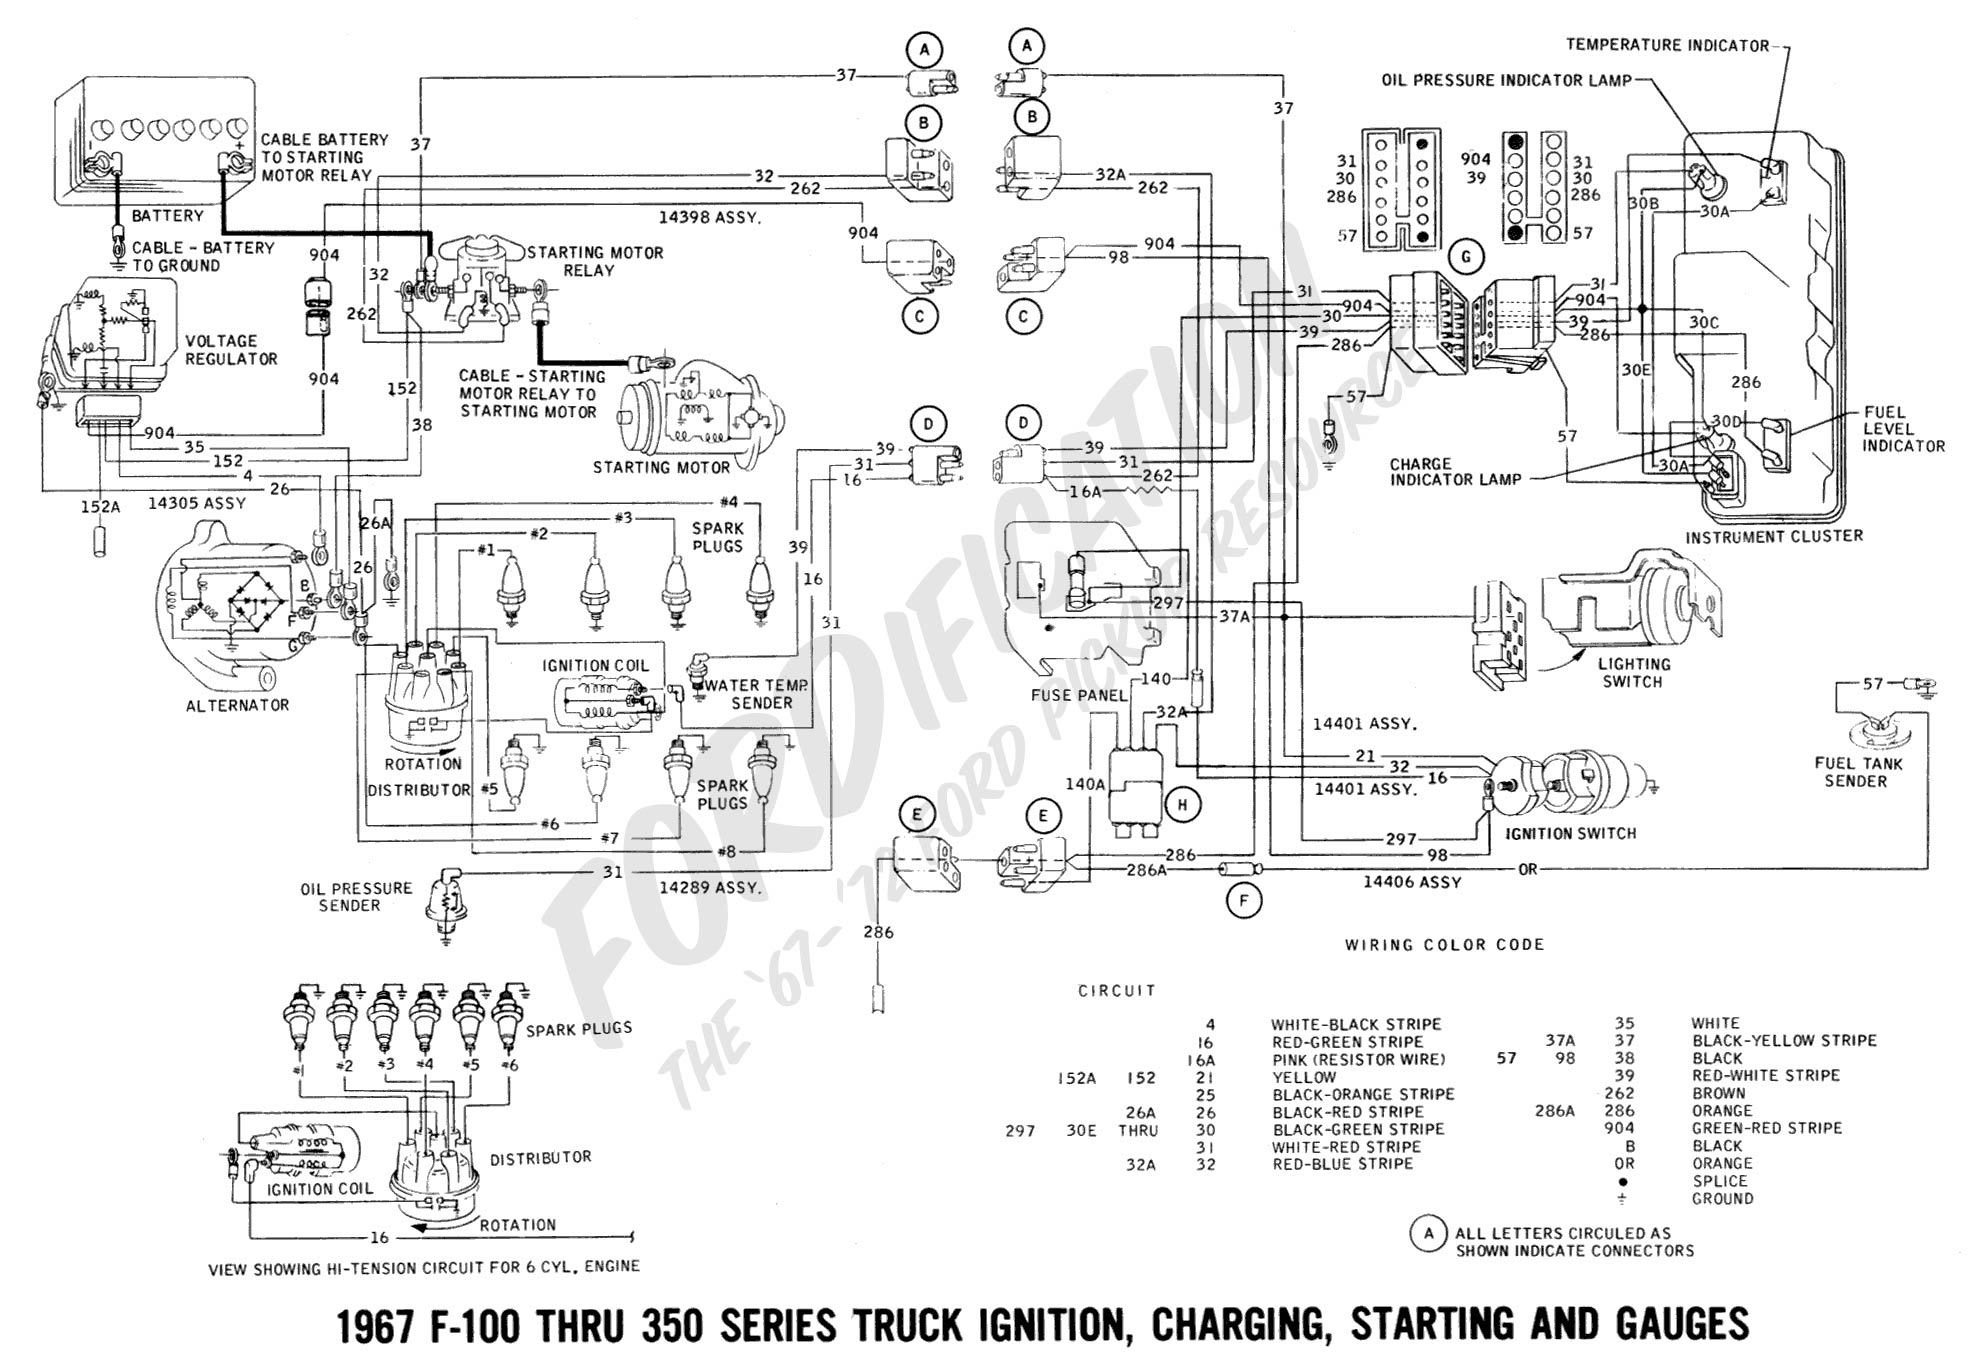 1973 Ford F100 Wiring Diagrams Electrical Oldsmobile Cutlass Diagram Charging Starting